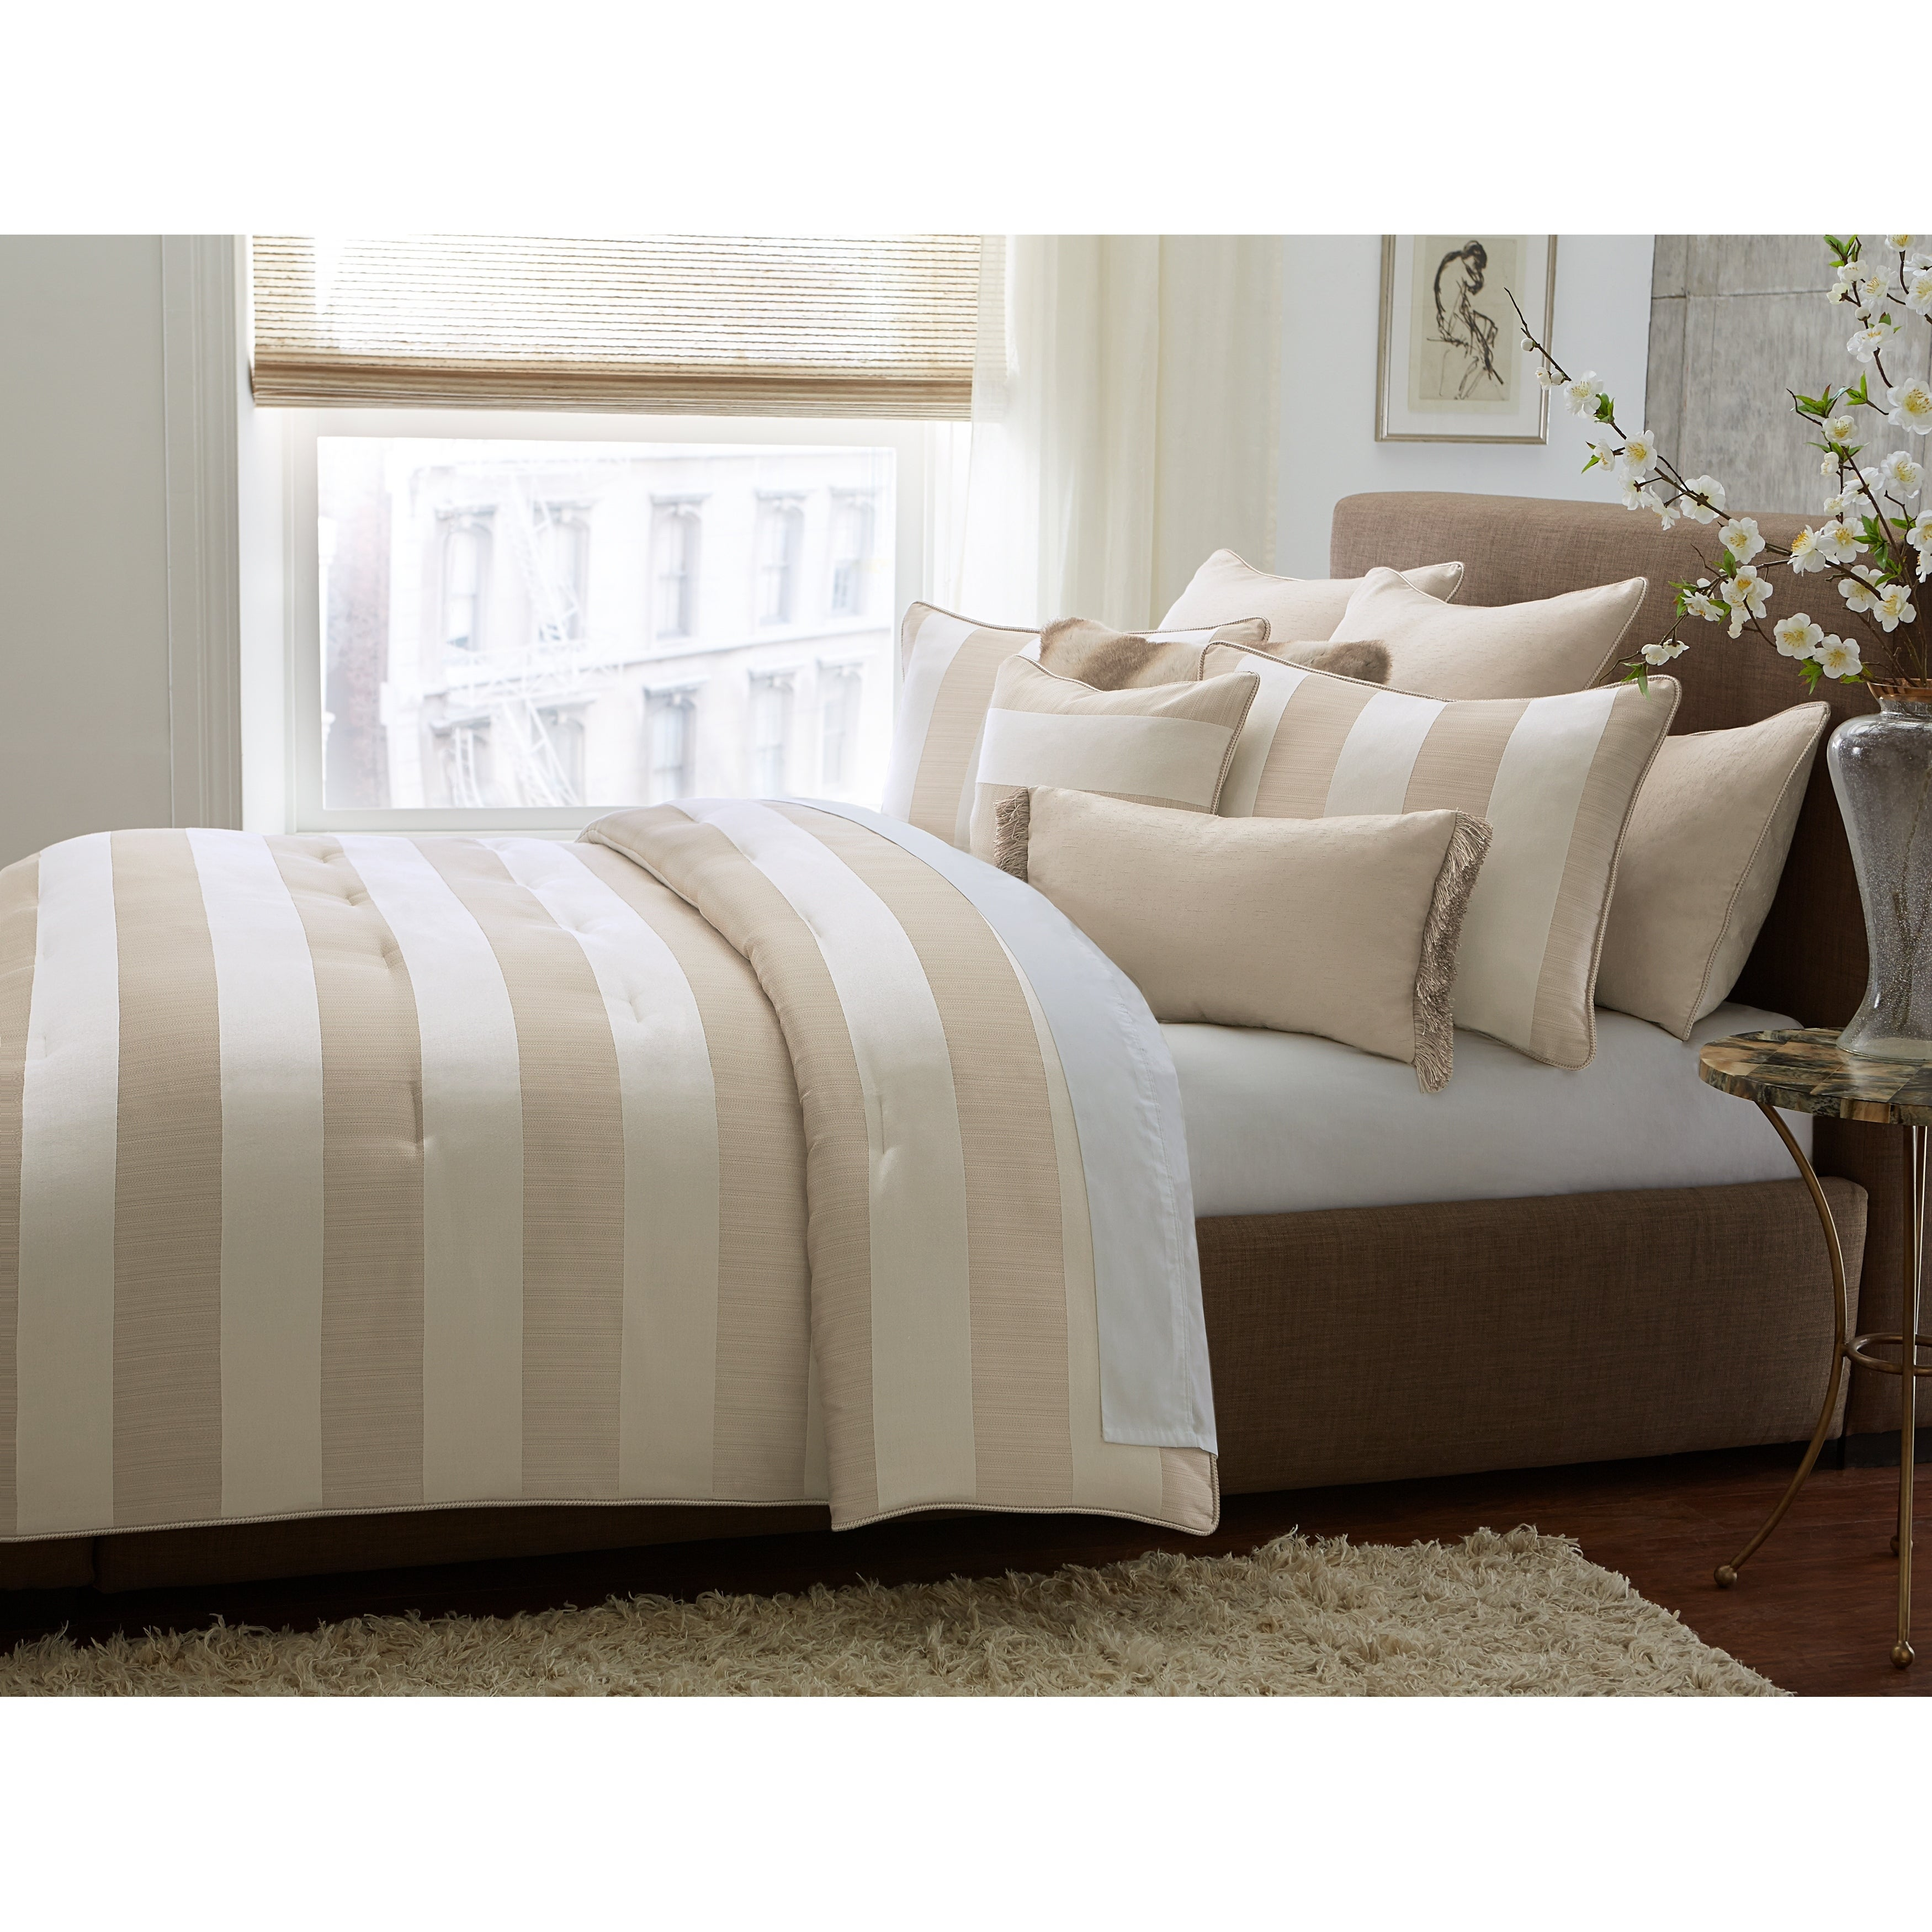 Palermo Superking Bedspread In Silver Grey Decorative Quilts Bedspreads Home Furniture Diy Plastpath Com Br